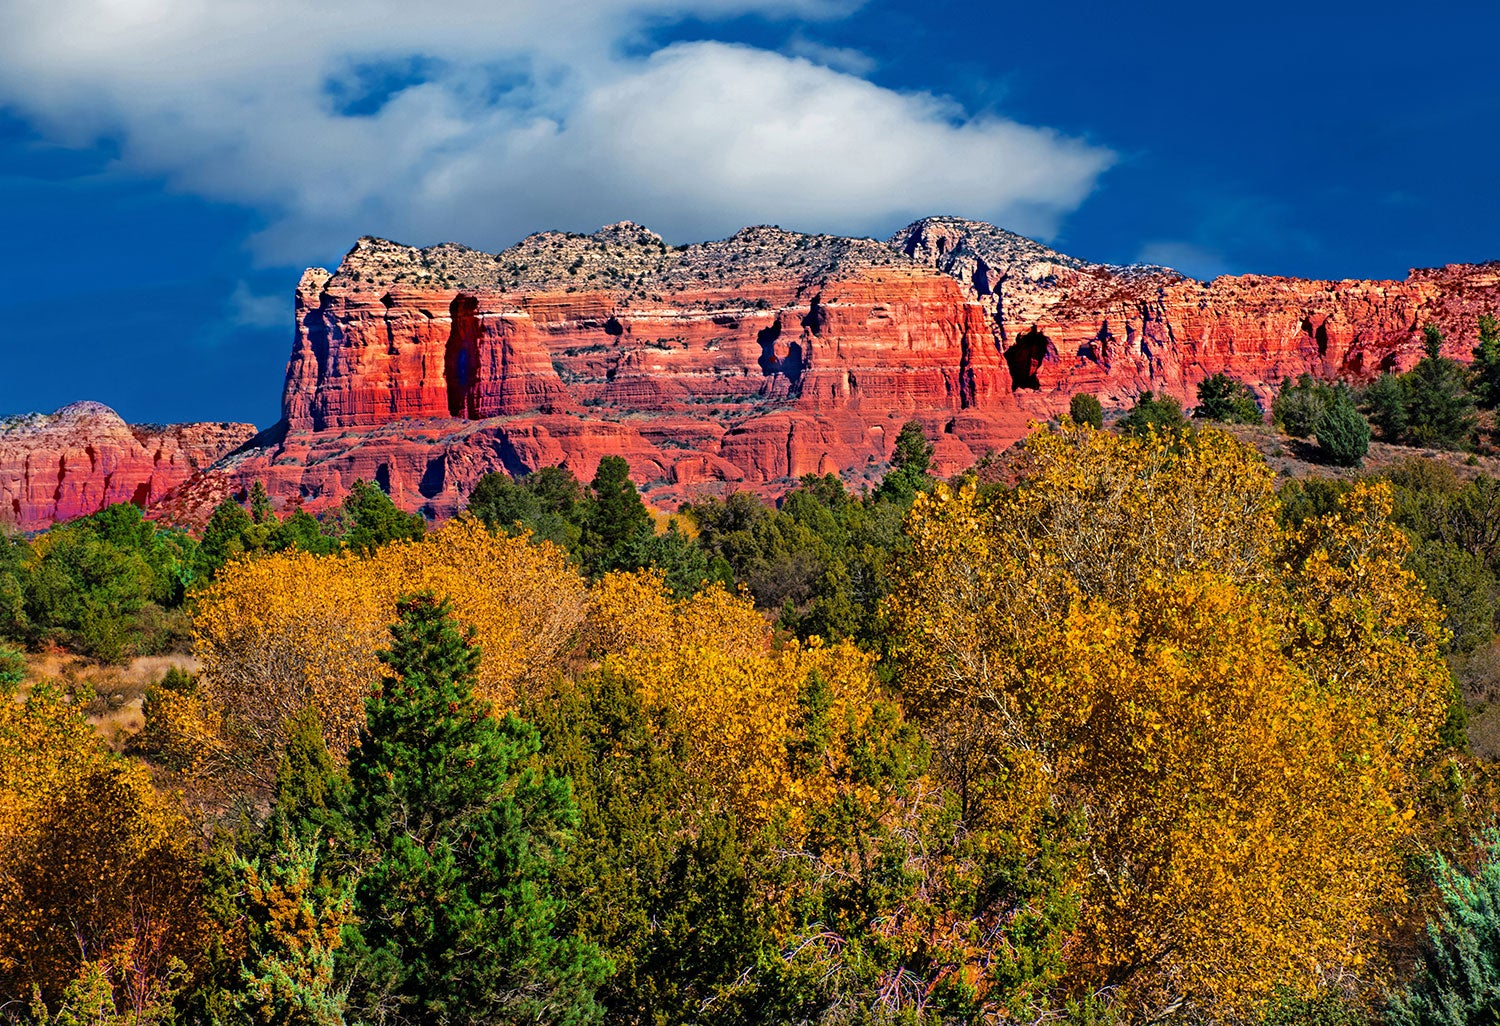 trees with yellow leaves in front of red cliffs and blue sky